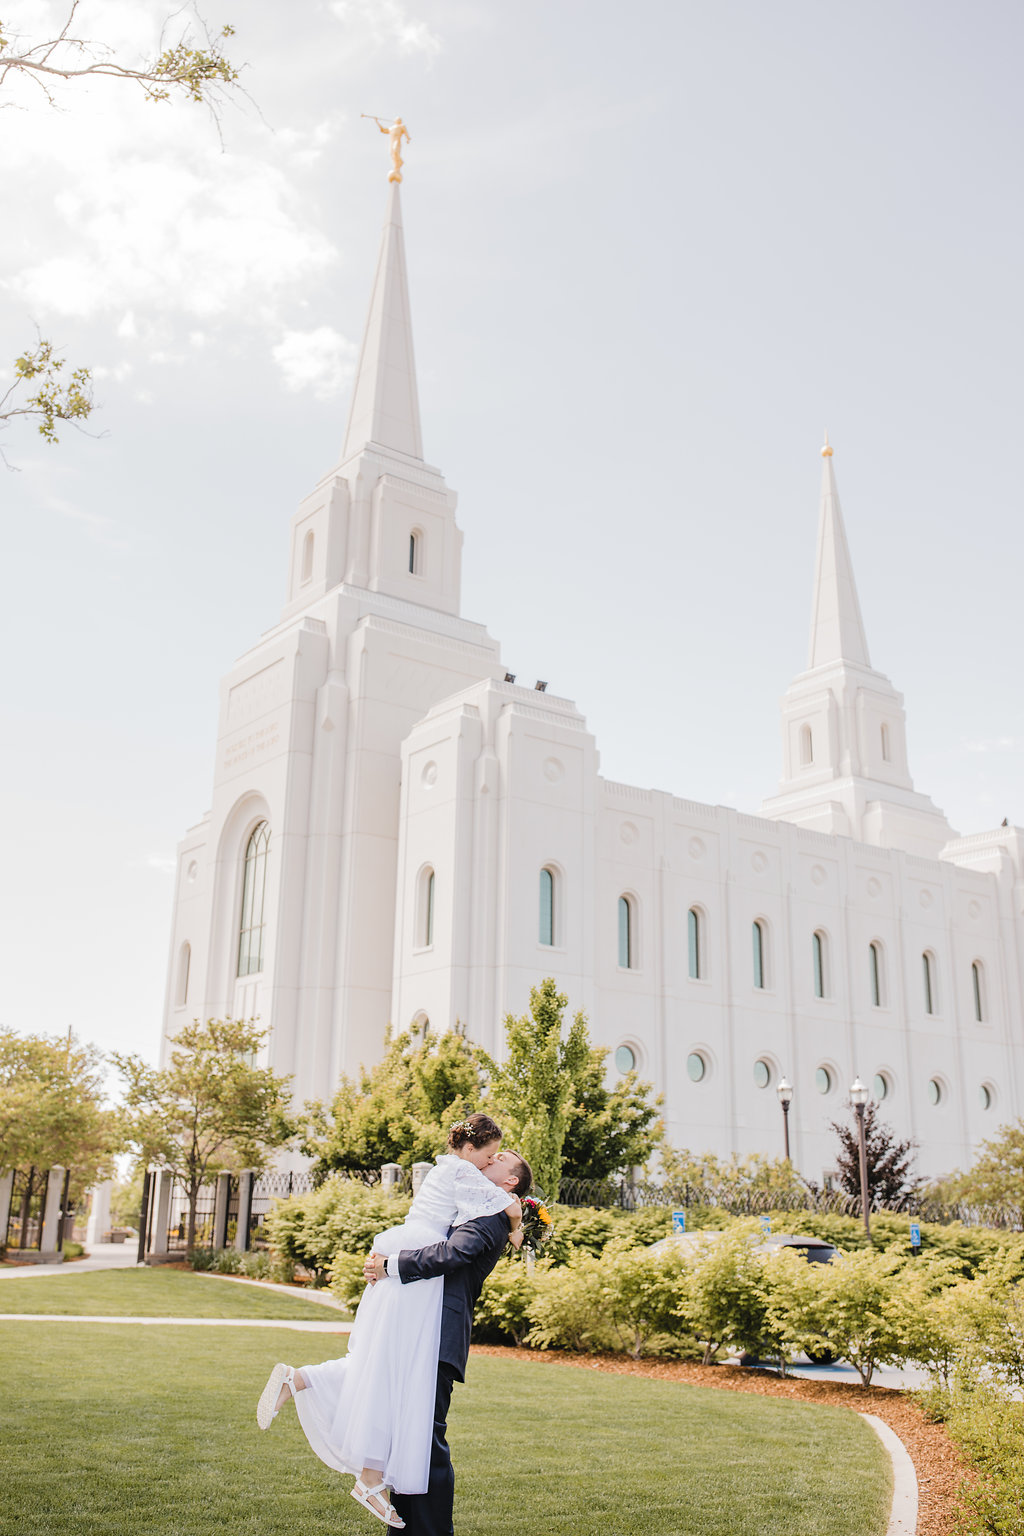 professional wedding day photos at the brigham city lds temple young couple romantic dancing on their wedding day calli richards